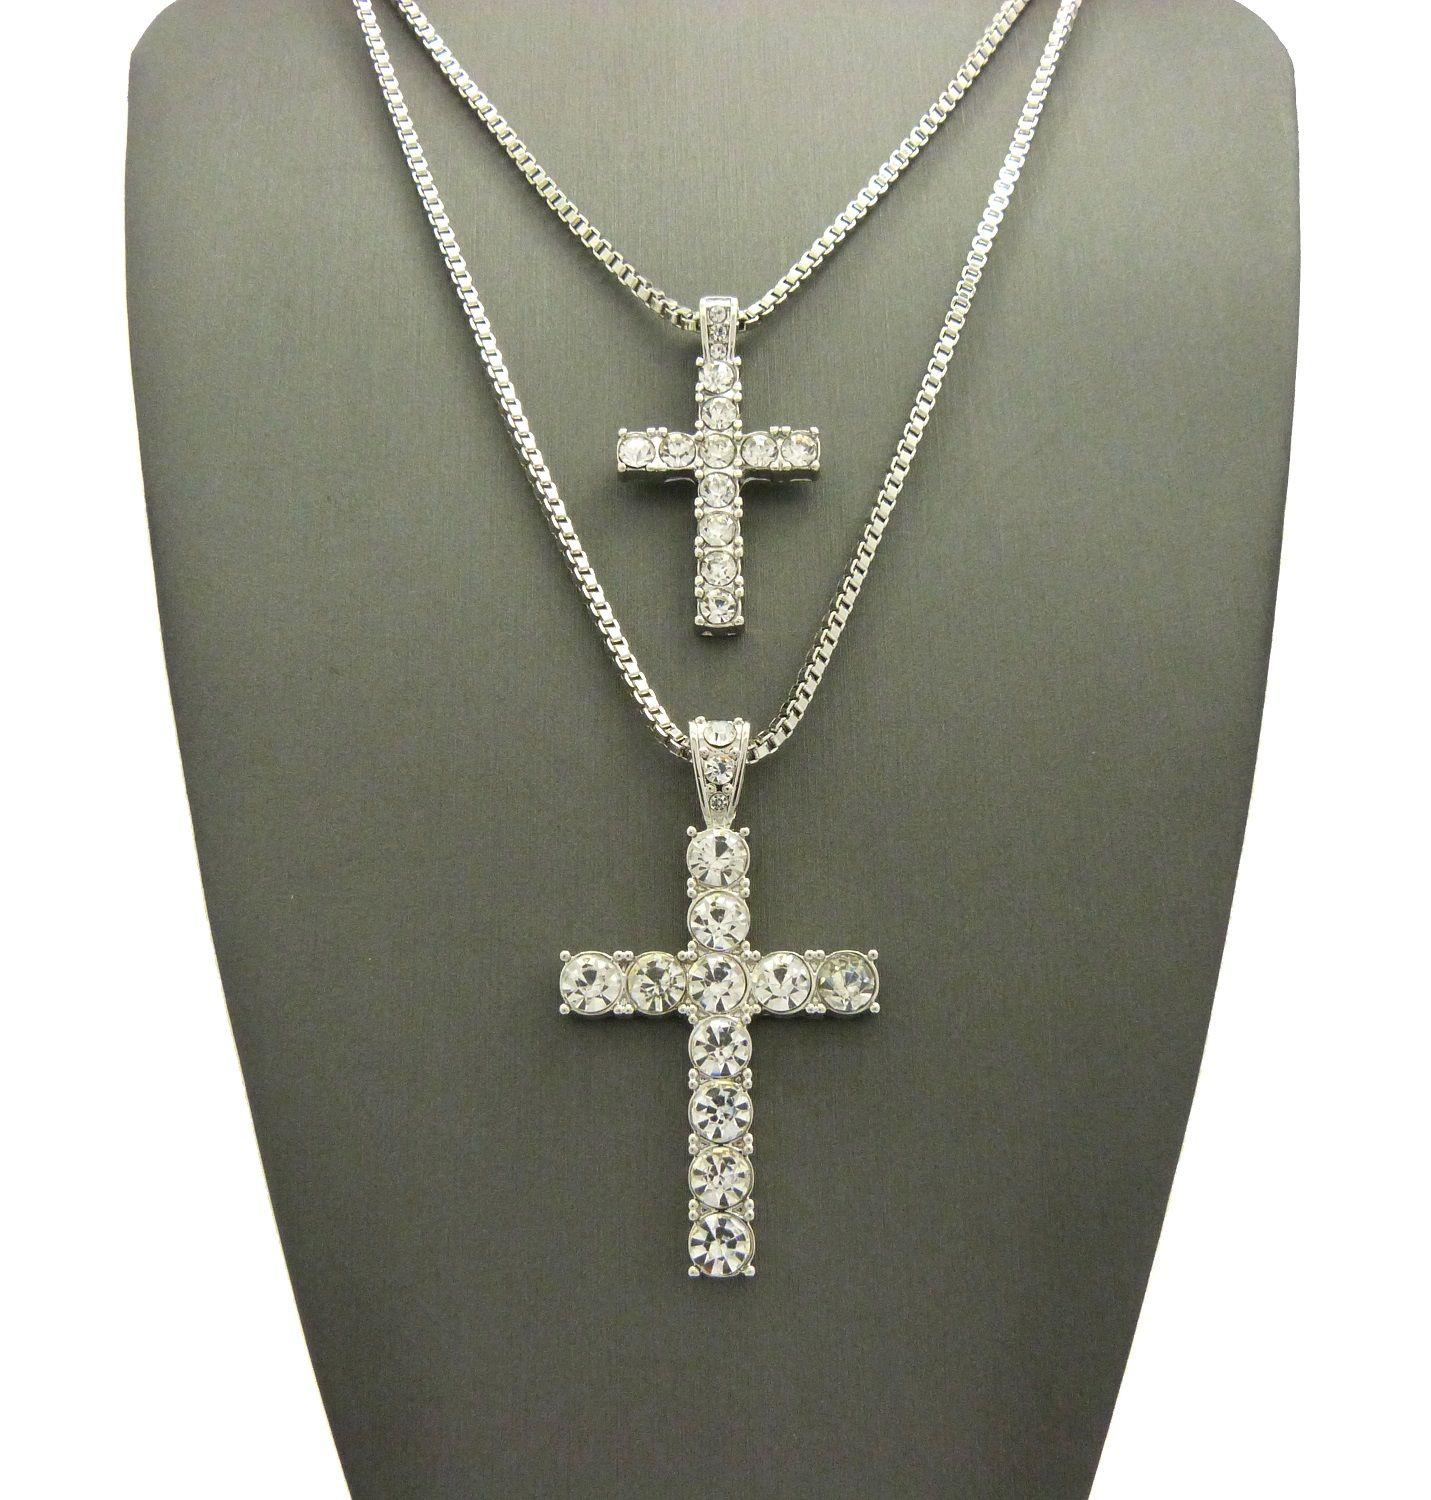 New iced out cross double pendant box chain hip hop necklace set iced out cross double pendant box chain hip hop necklace set mozeypictures Choice Image